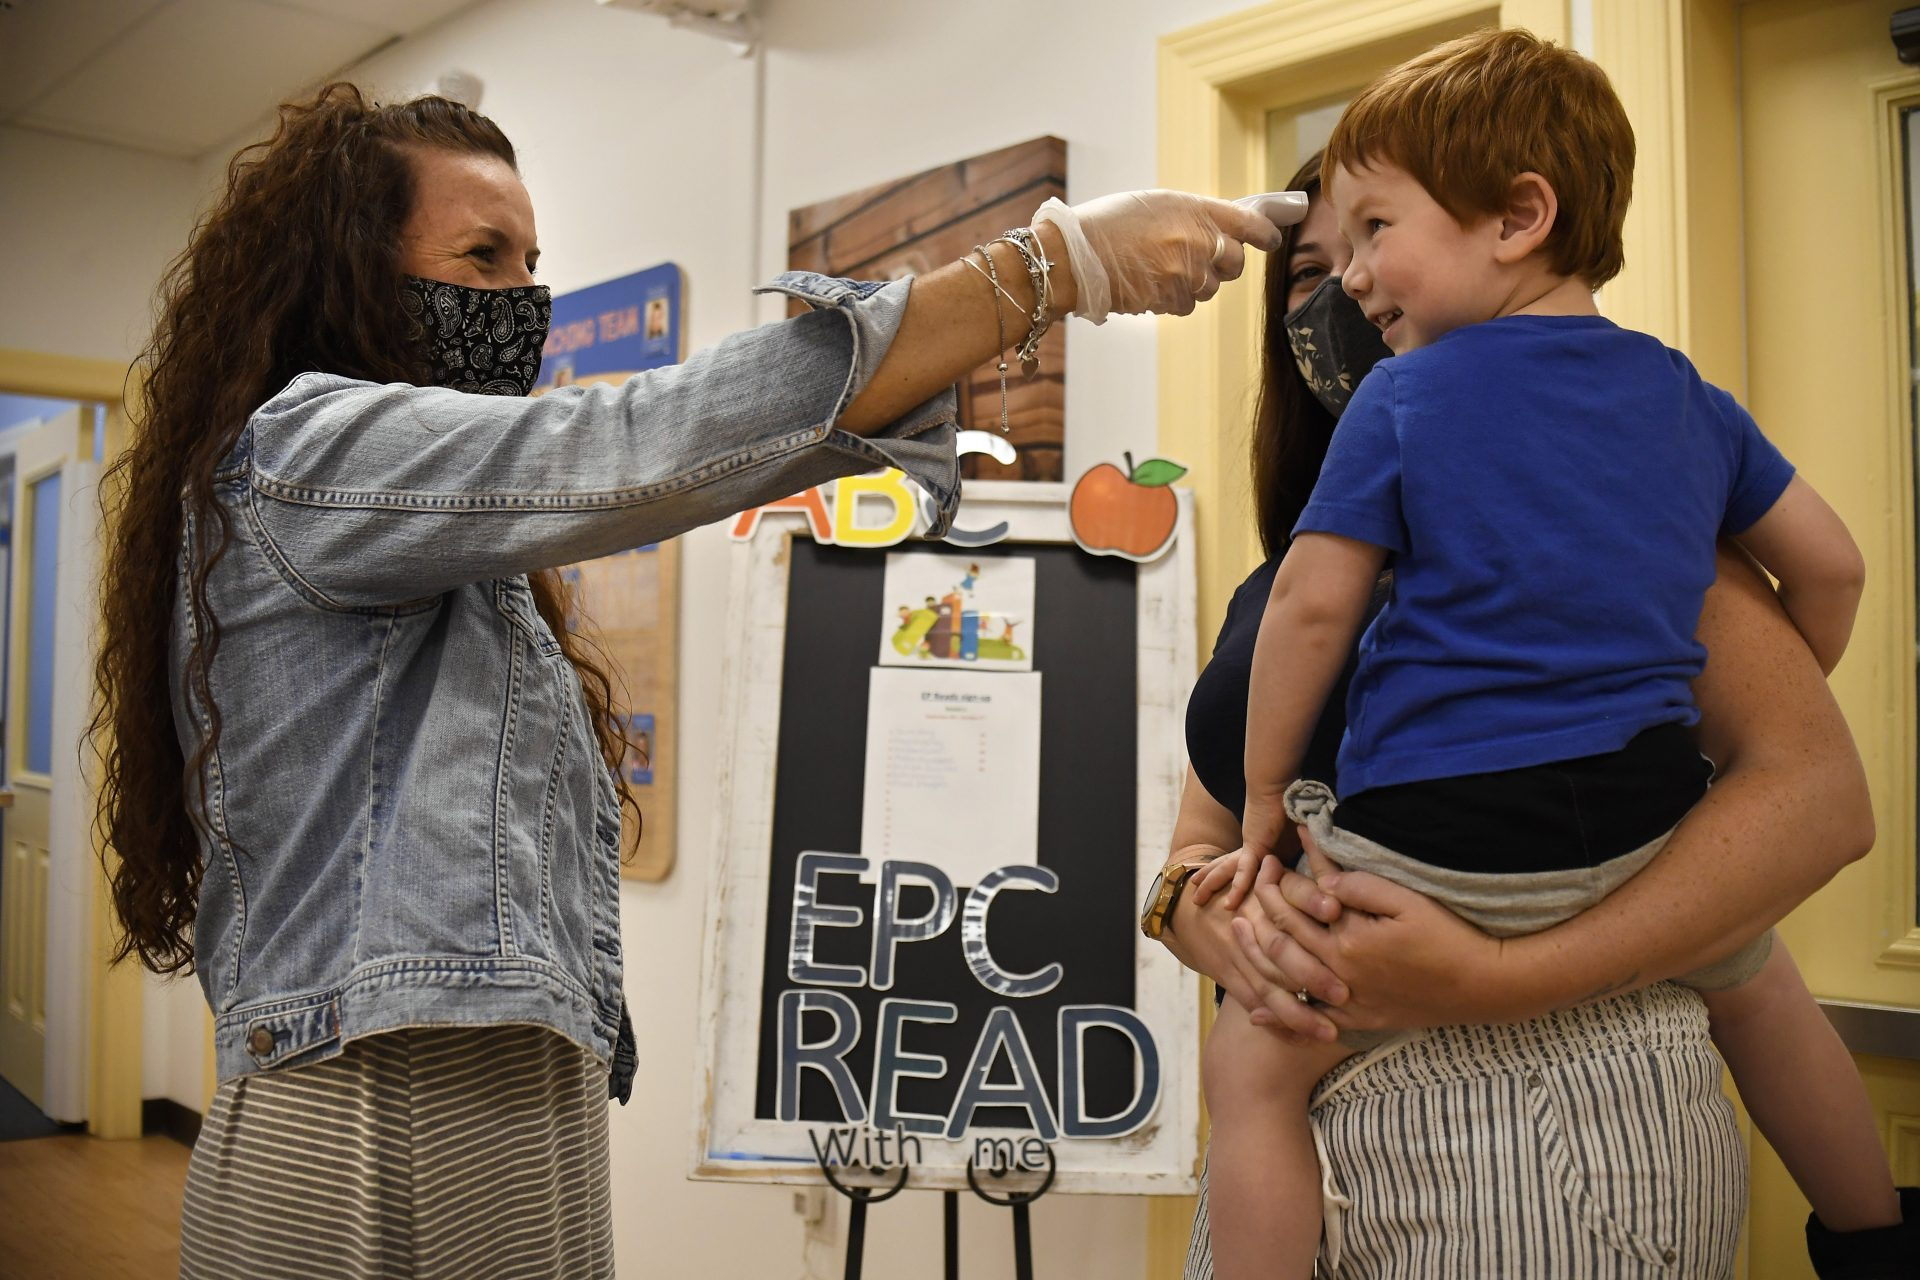 In this Thursday Aug. 27, 2020 photo, Assistant Director Tammy Cavanaugh, left, takes the temperature of Maverick Barbera has he is held by his mother Katrina Meli at Educational Playcare, in Glastonbury, Conn. All children entering the daycare have their temperature taken.